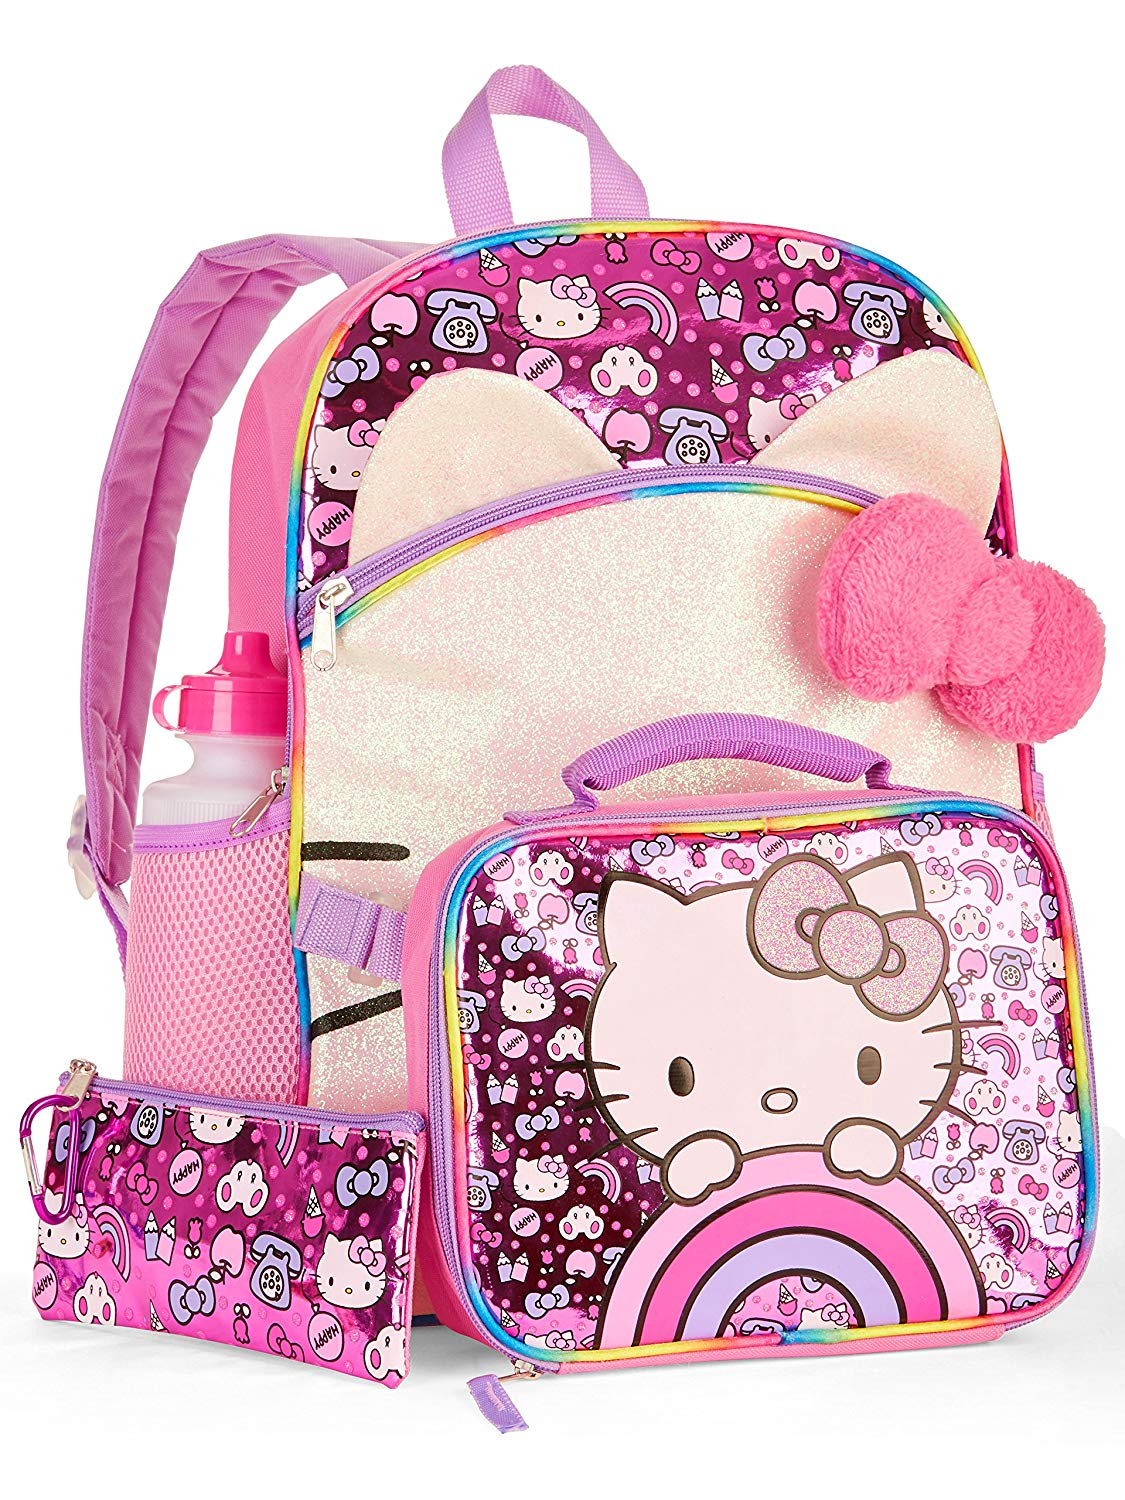 ea8279cb7619 Get Quotations · Hello Kitty 5-Piece Backpack Set With Lunch Bag